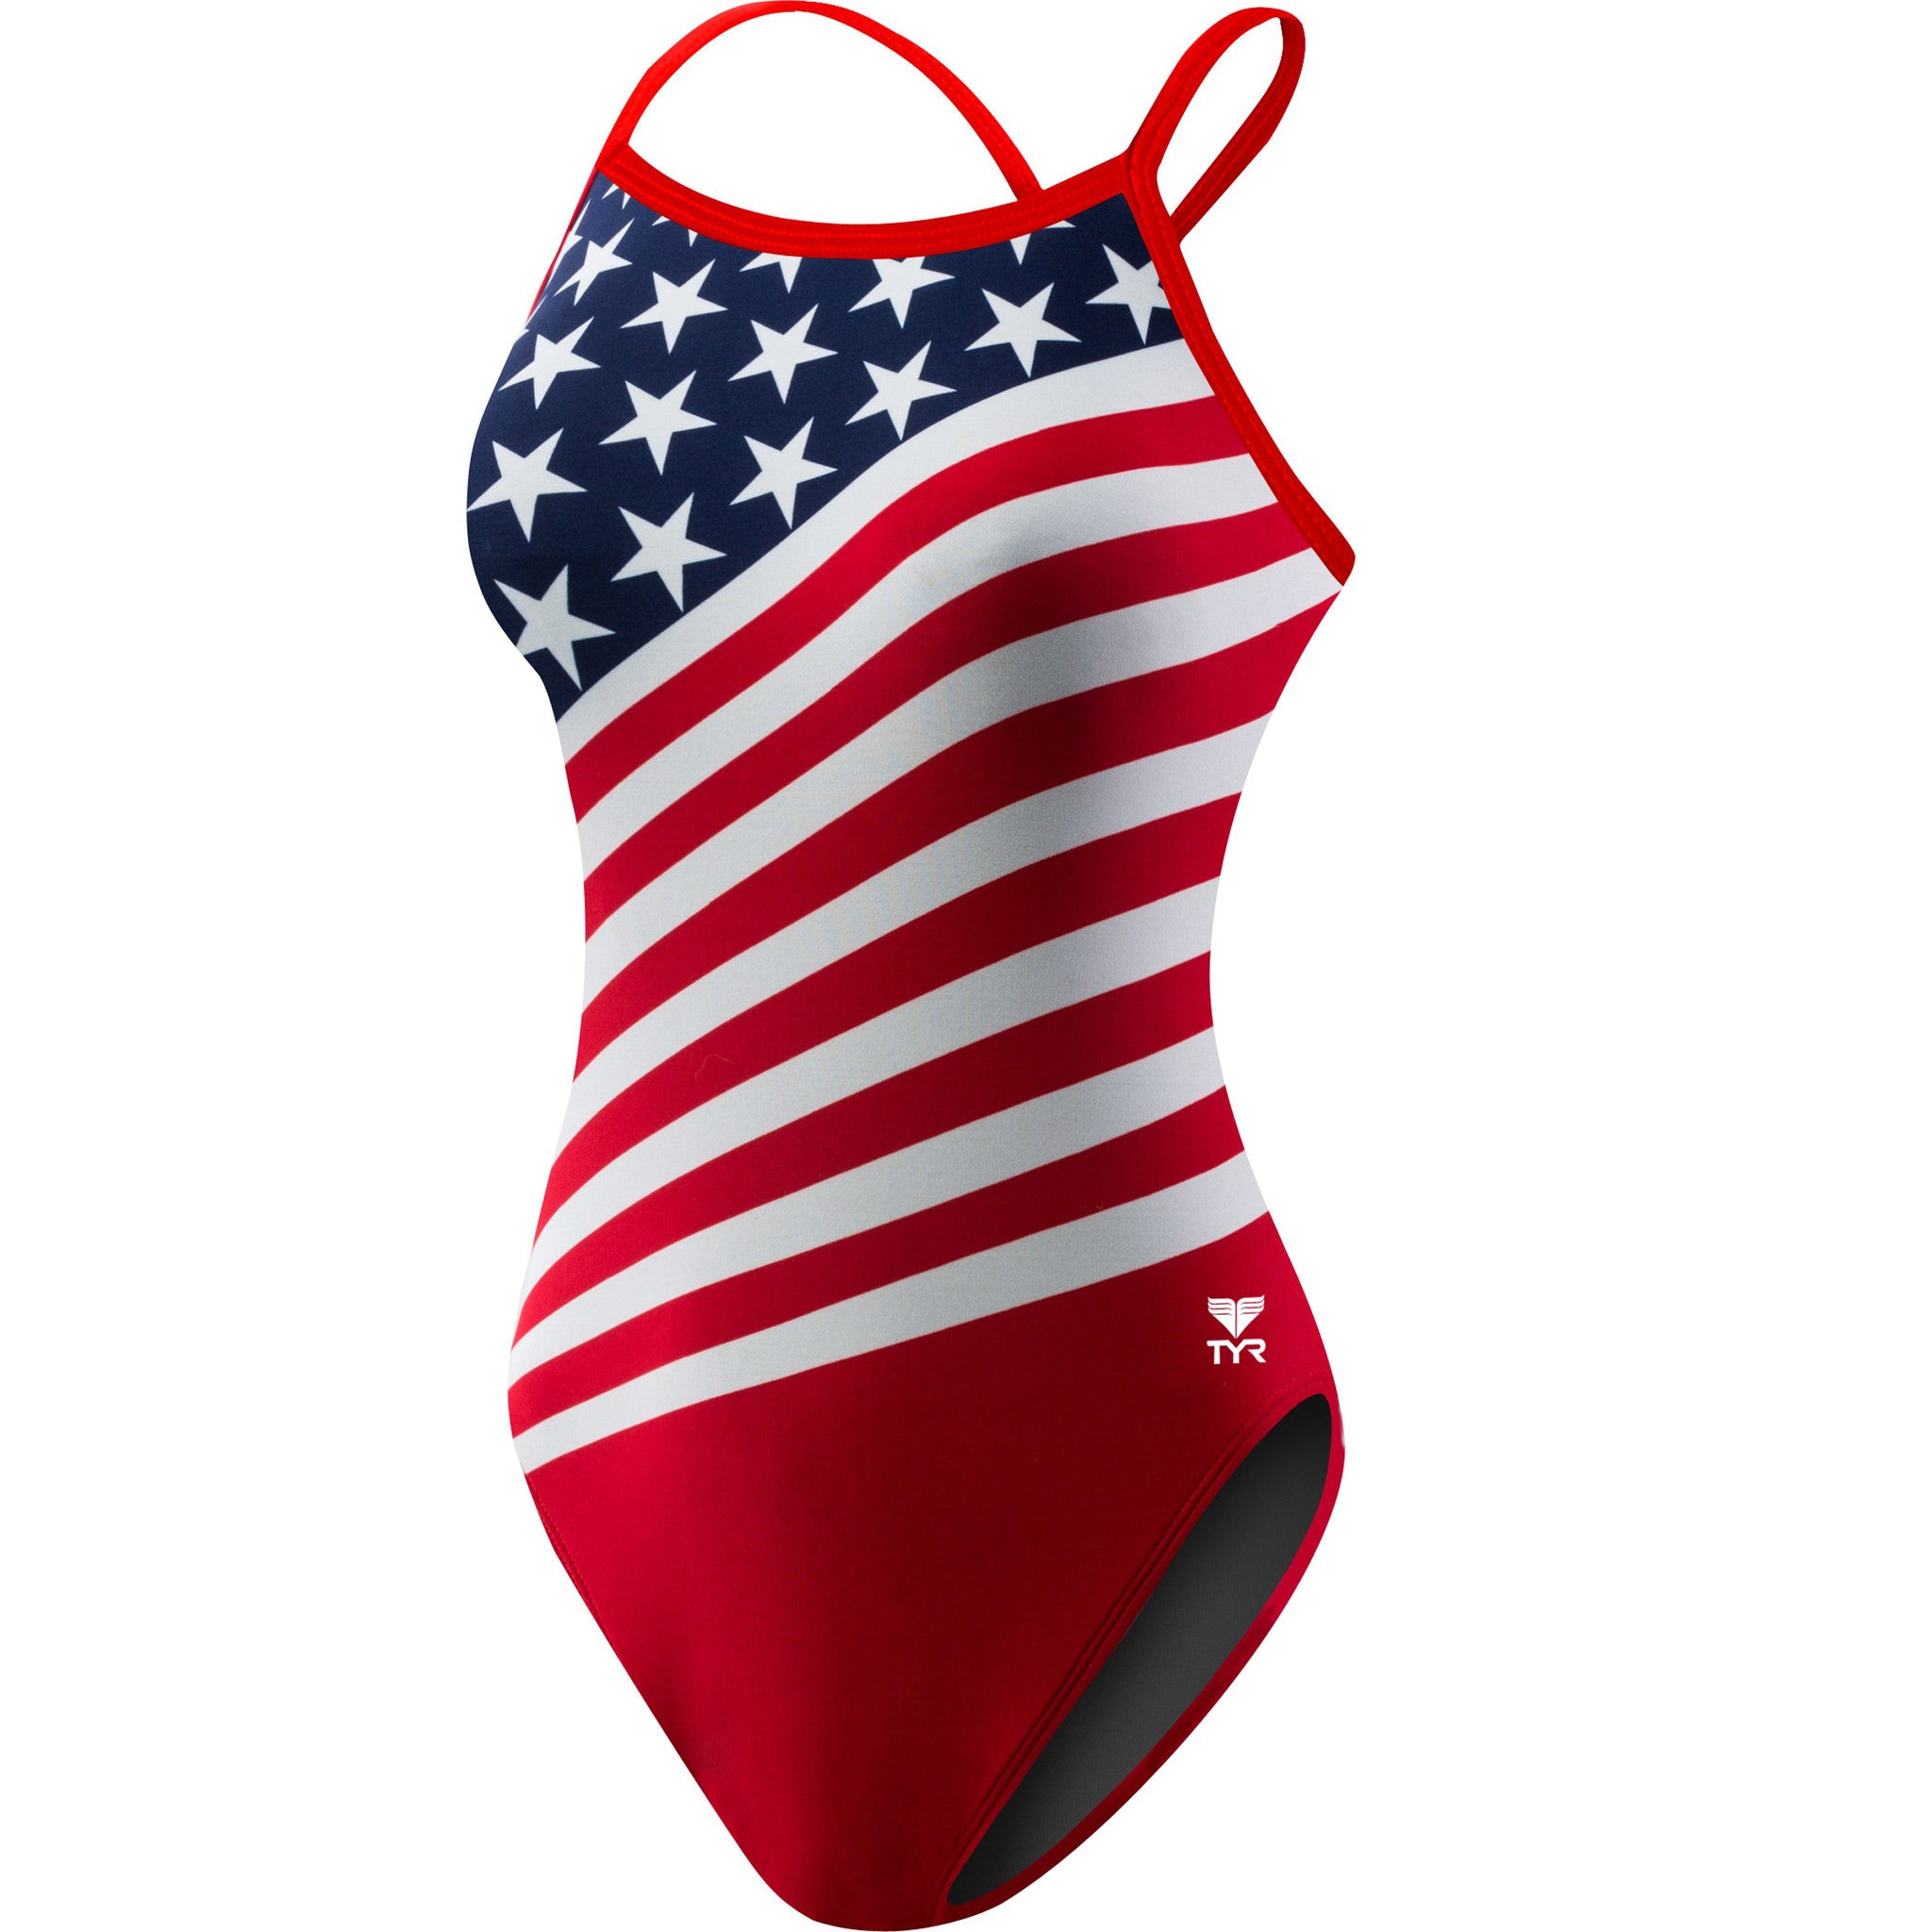 Tyr Women's Stars and Stripes Crosscutfit Swimsuit - Triathlon Point